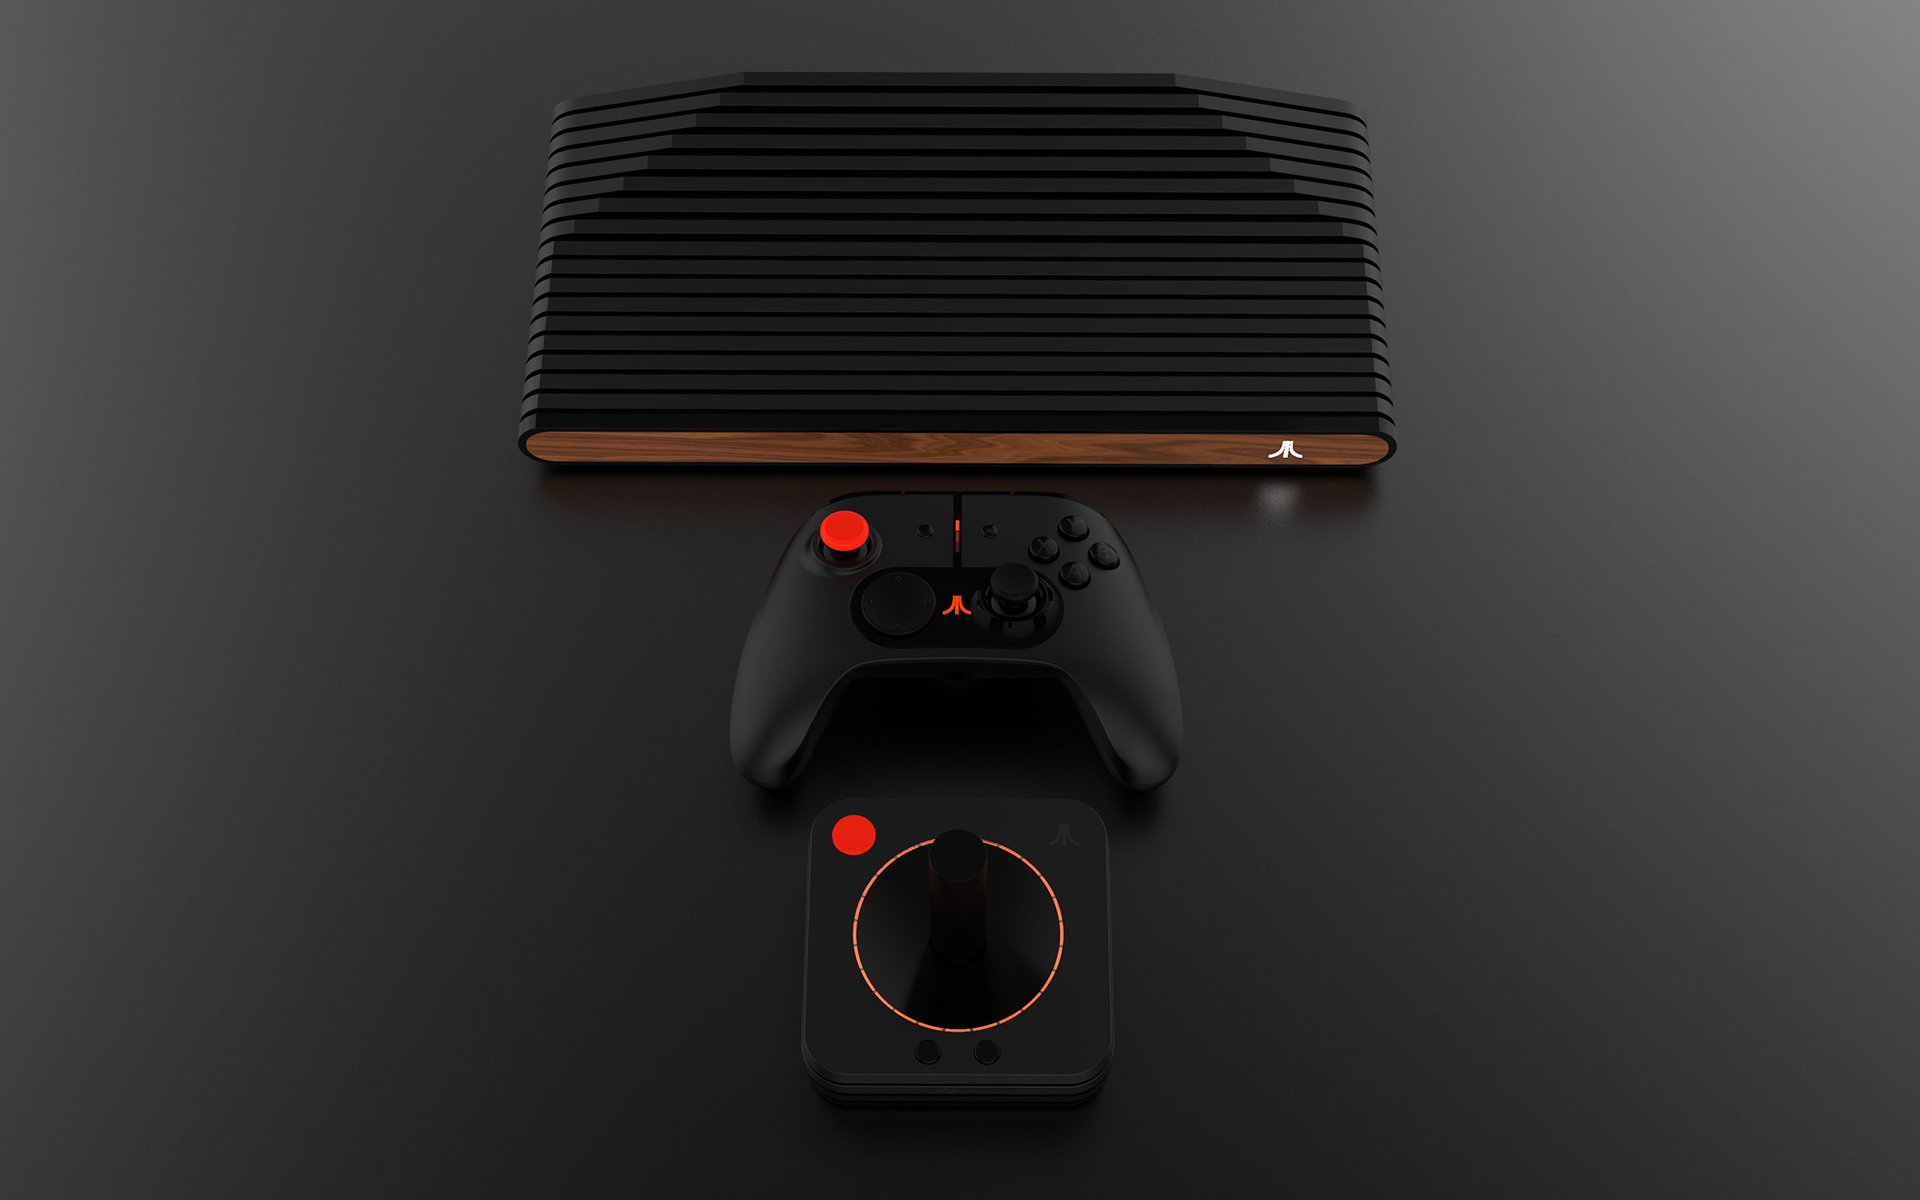 Atari unveils the Atari VCS and promises to change the way we use TVs